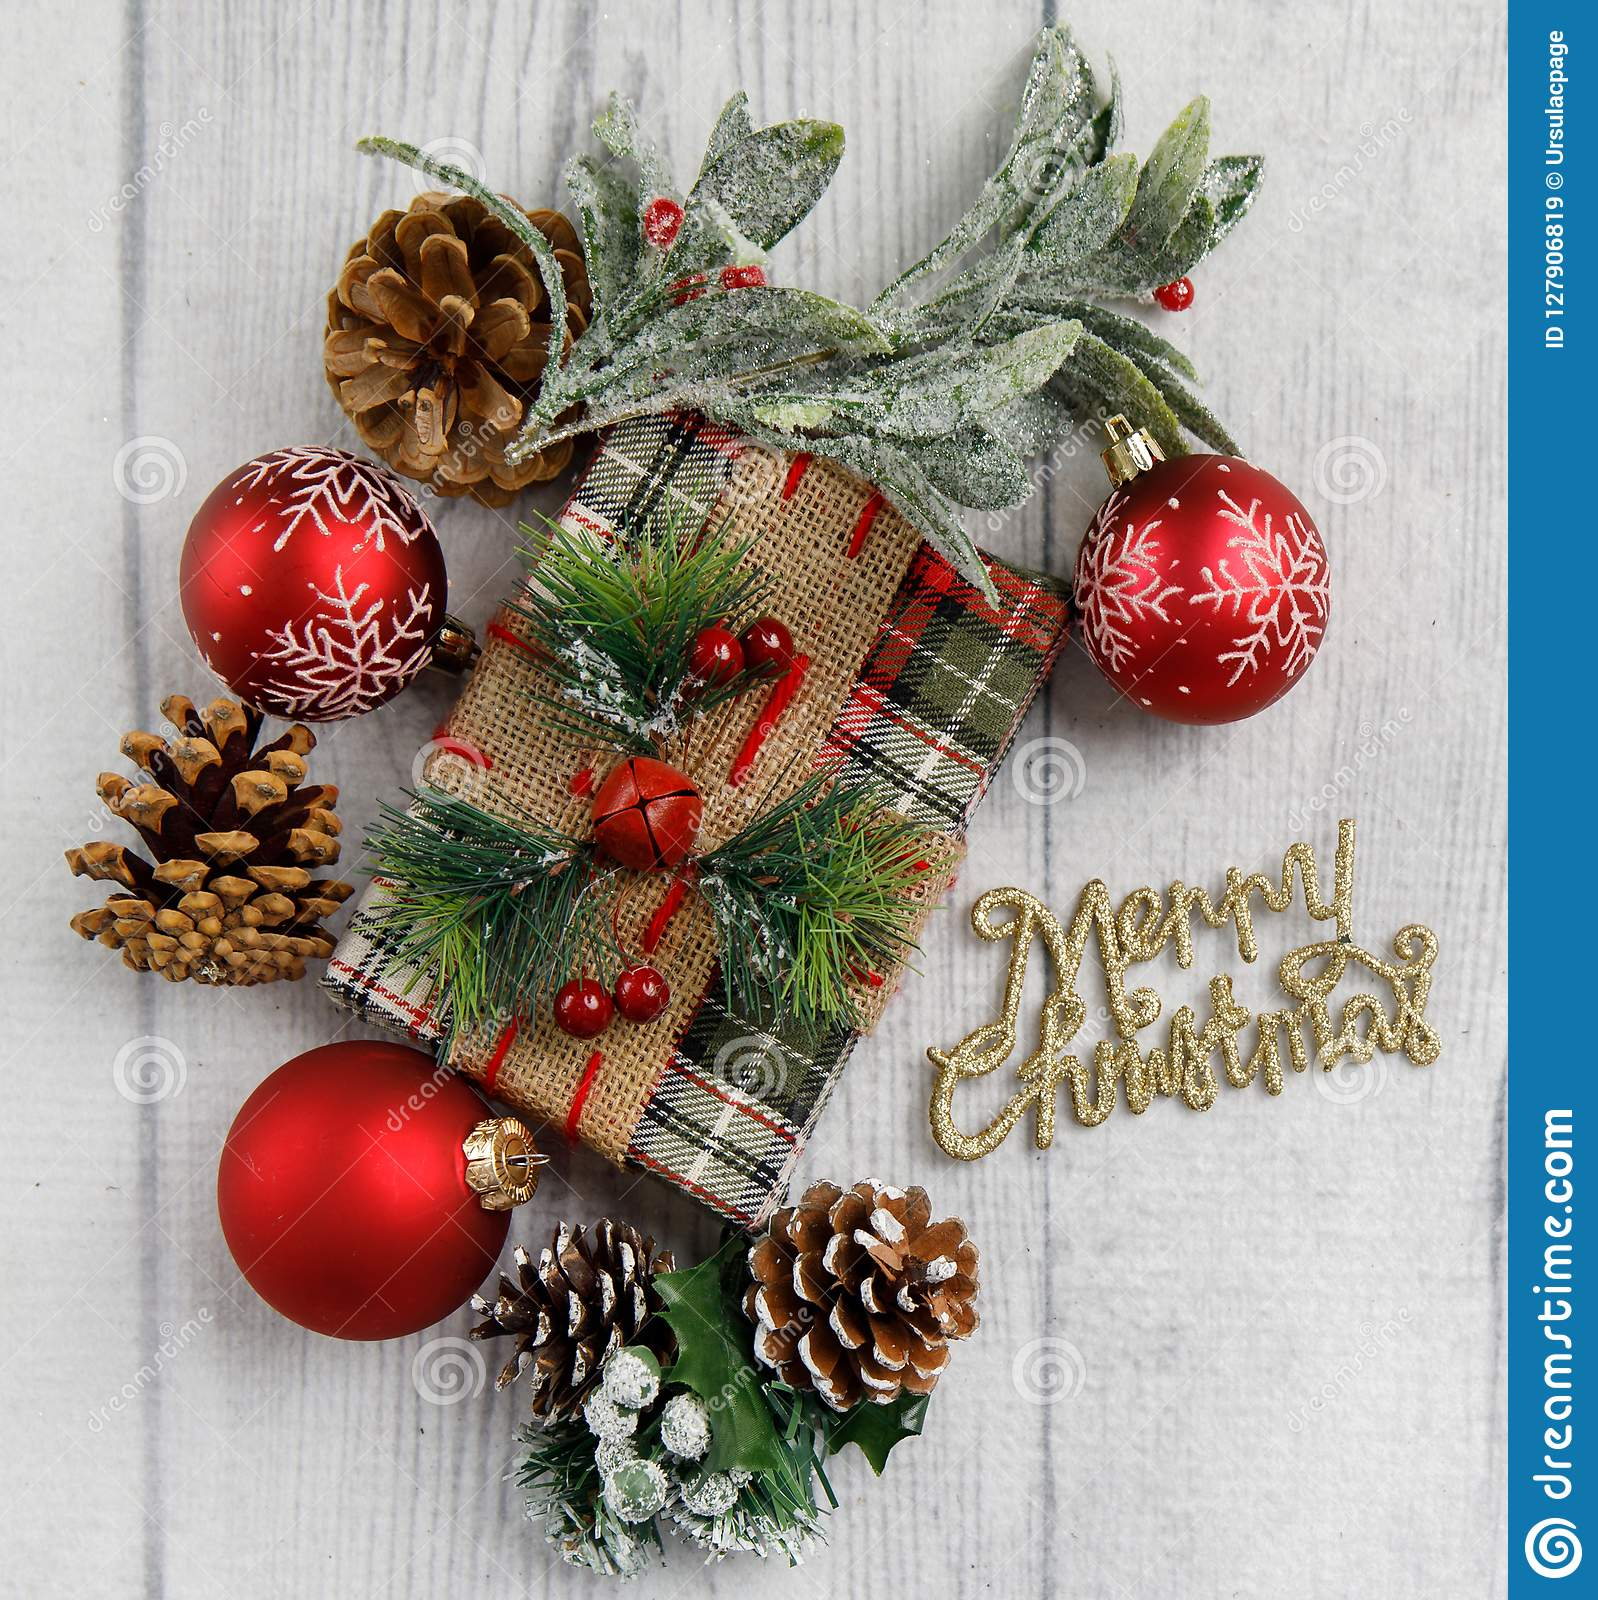 Christmas Theme On White Wood Background With Space For Text Stock Image Image Of Card Pine 127906819